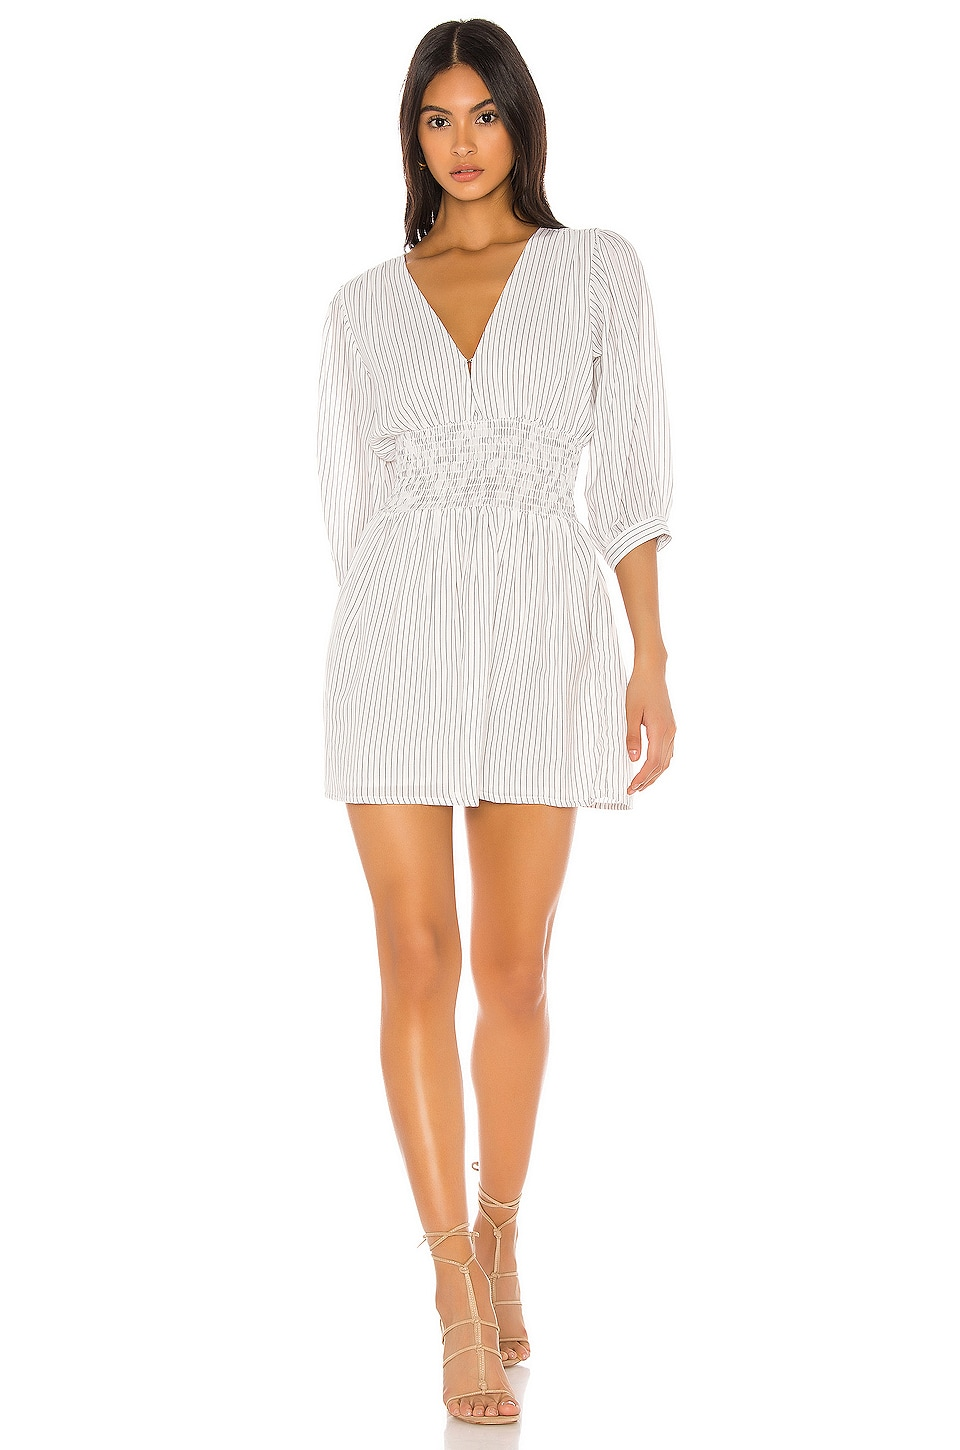 Cleobella Sadie Mini Dress in Ivory